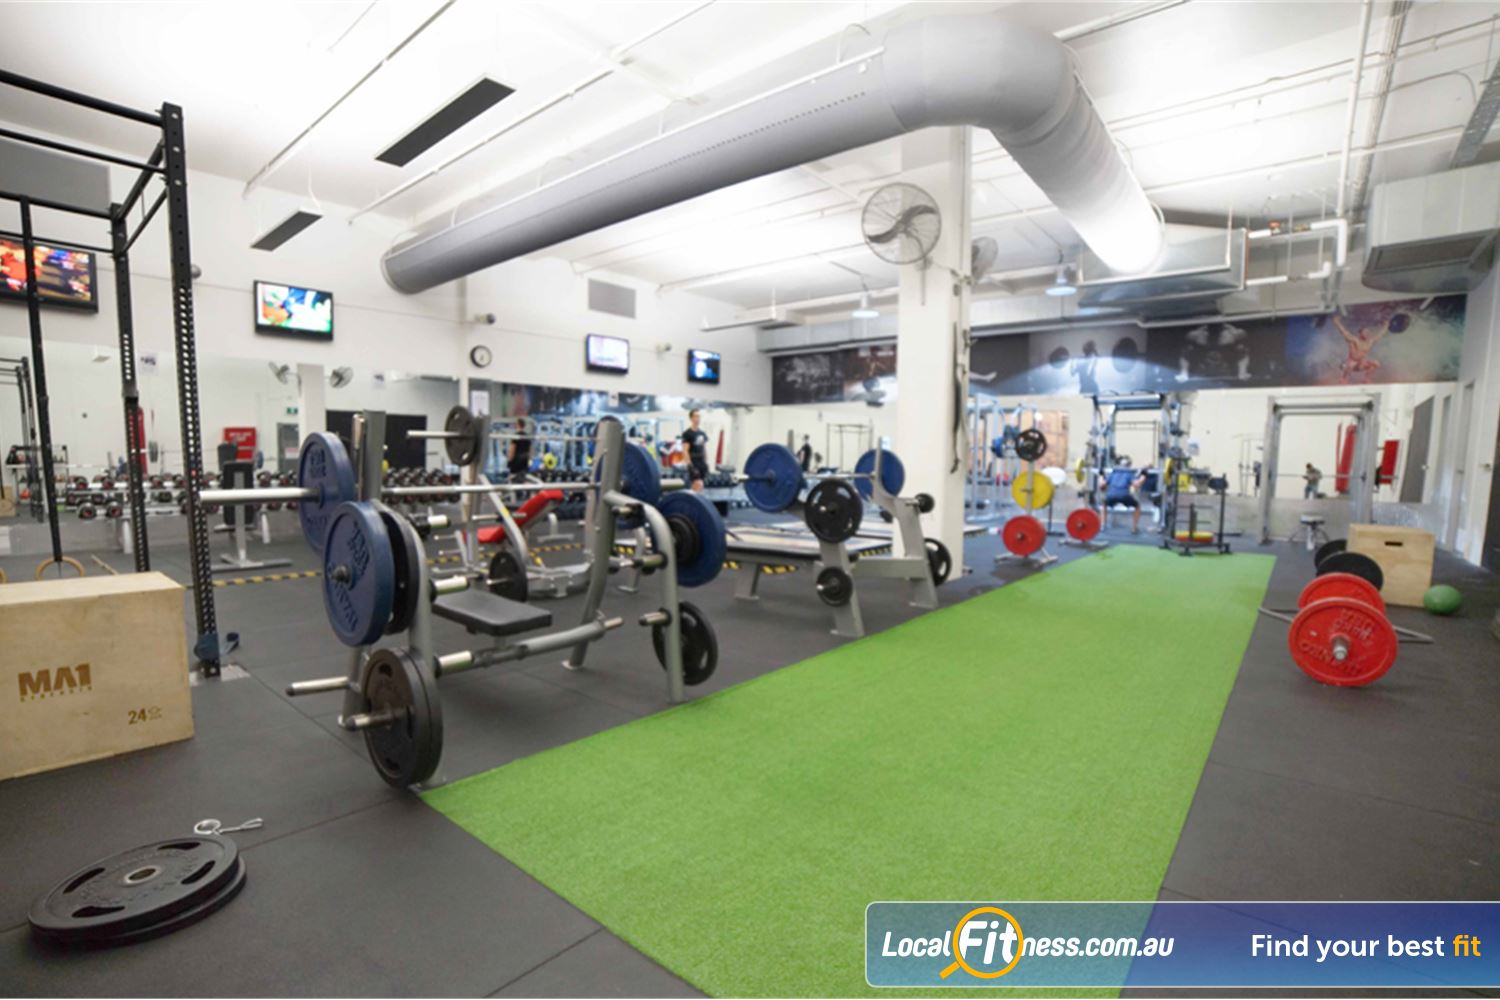 Goodlife Health Clubs South Melbourne Welcome to latest Goodlife South Melbourne gym.